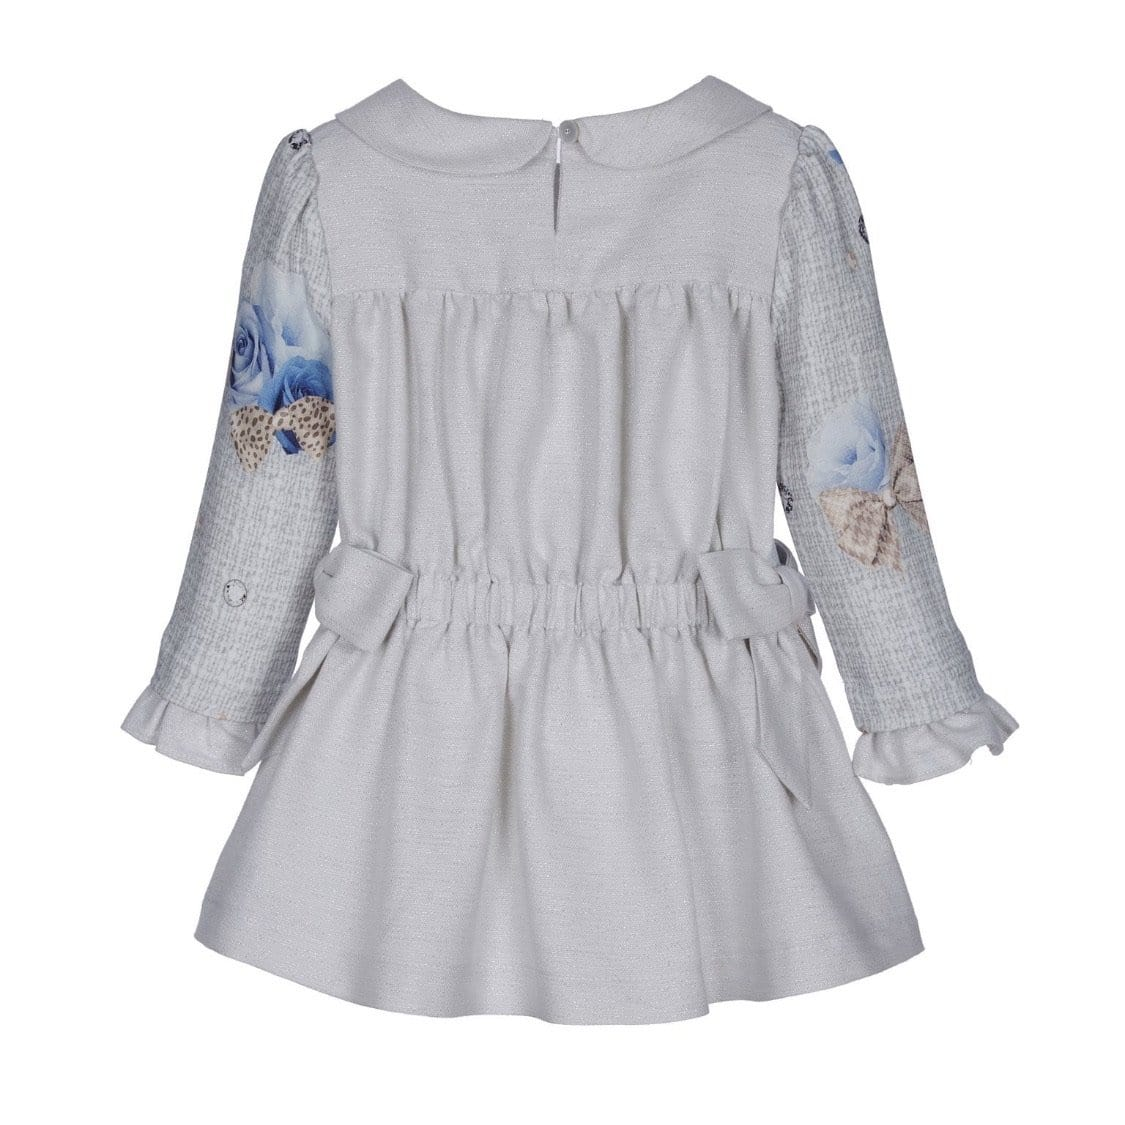 LAPIN HOUSE BLUE ROSE PETER PAN DRESS